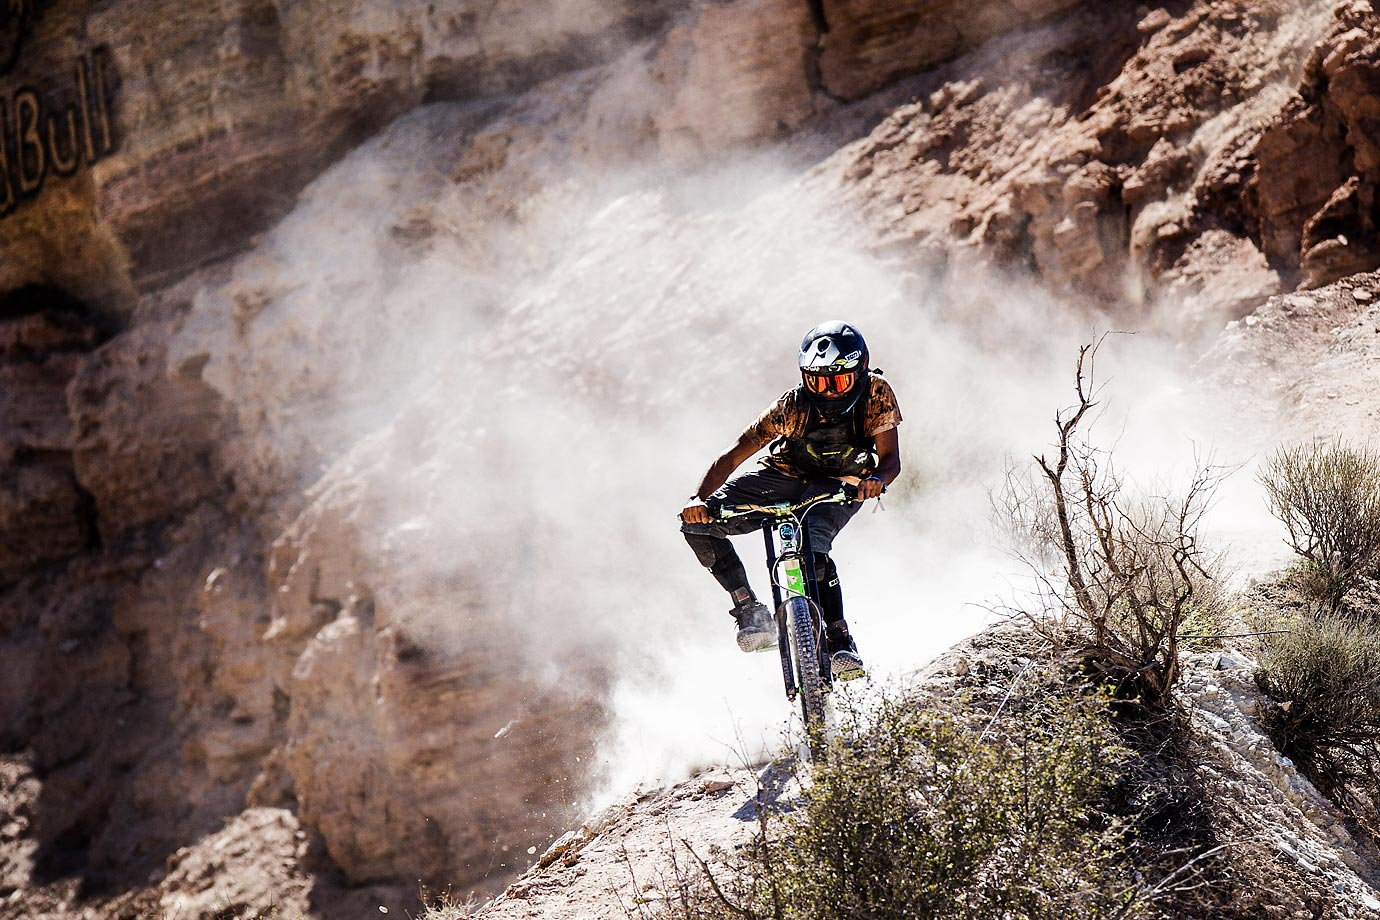 Nicola Pescetto of Spain during practice for Red Bull Rampage.